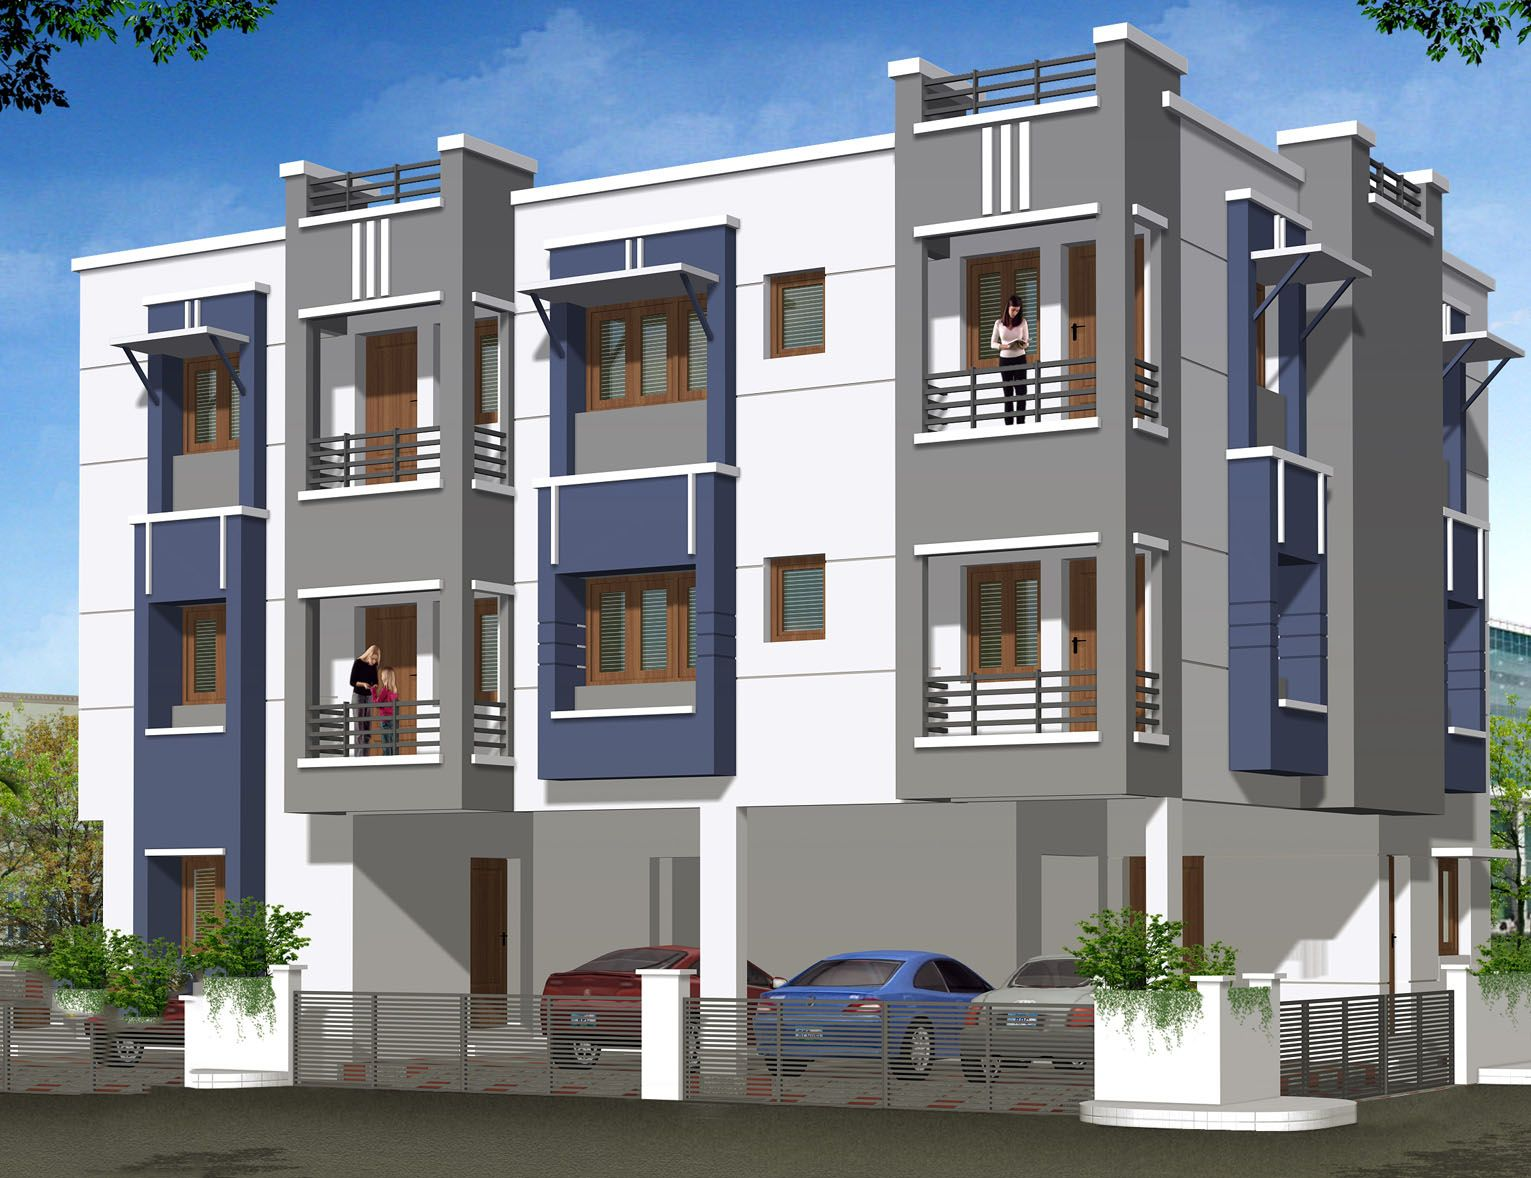 #GaurSaundaryam is a latest #project in #NoidaExtension, gives a glorious  treat to